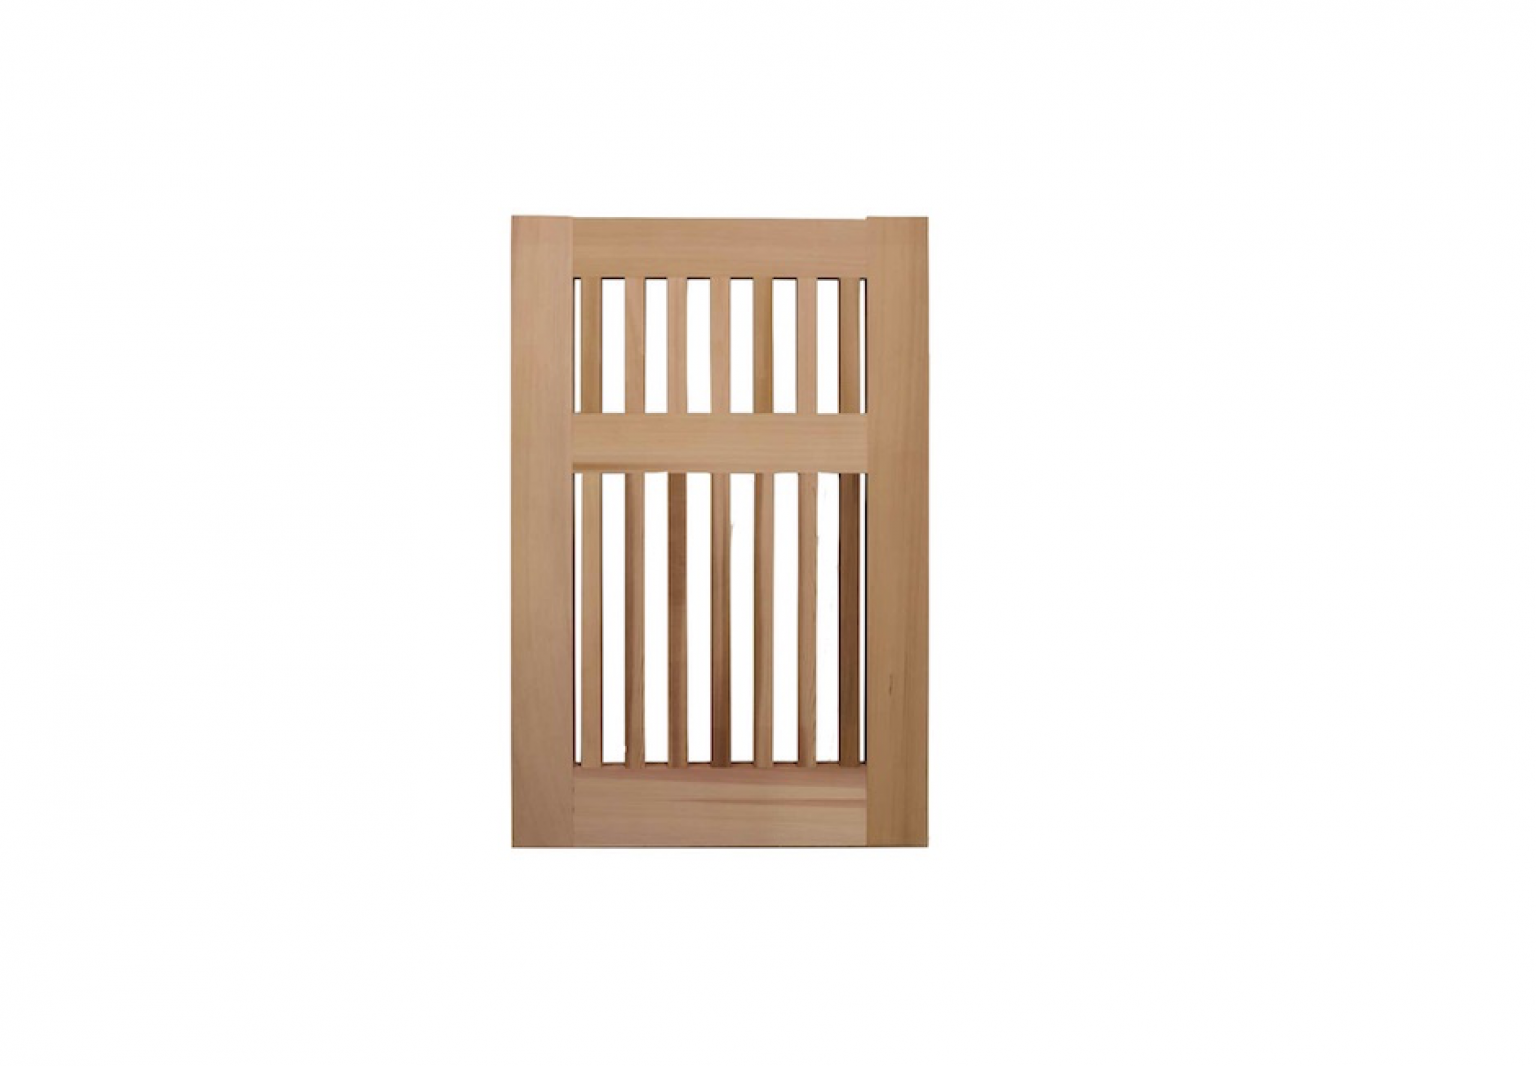 Wooden Garden Gates Provide Privacy And Protection, Keeping Precious Cargo  In And Unwanted Visitors Out. Curb Appeal Is Serious Business For Wooden  Gates; ...